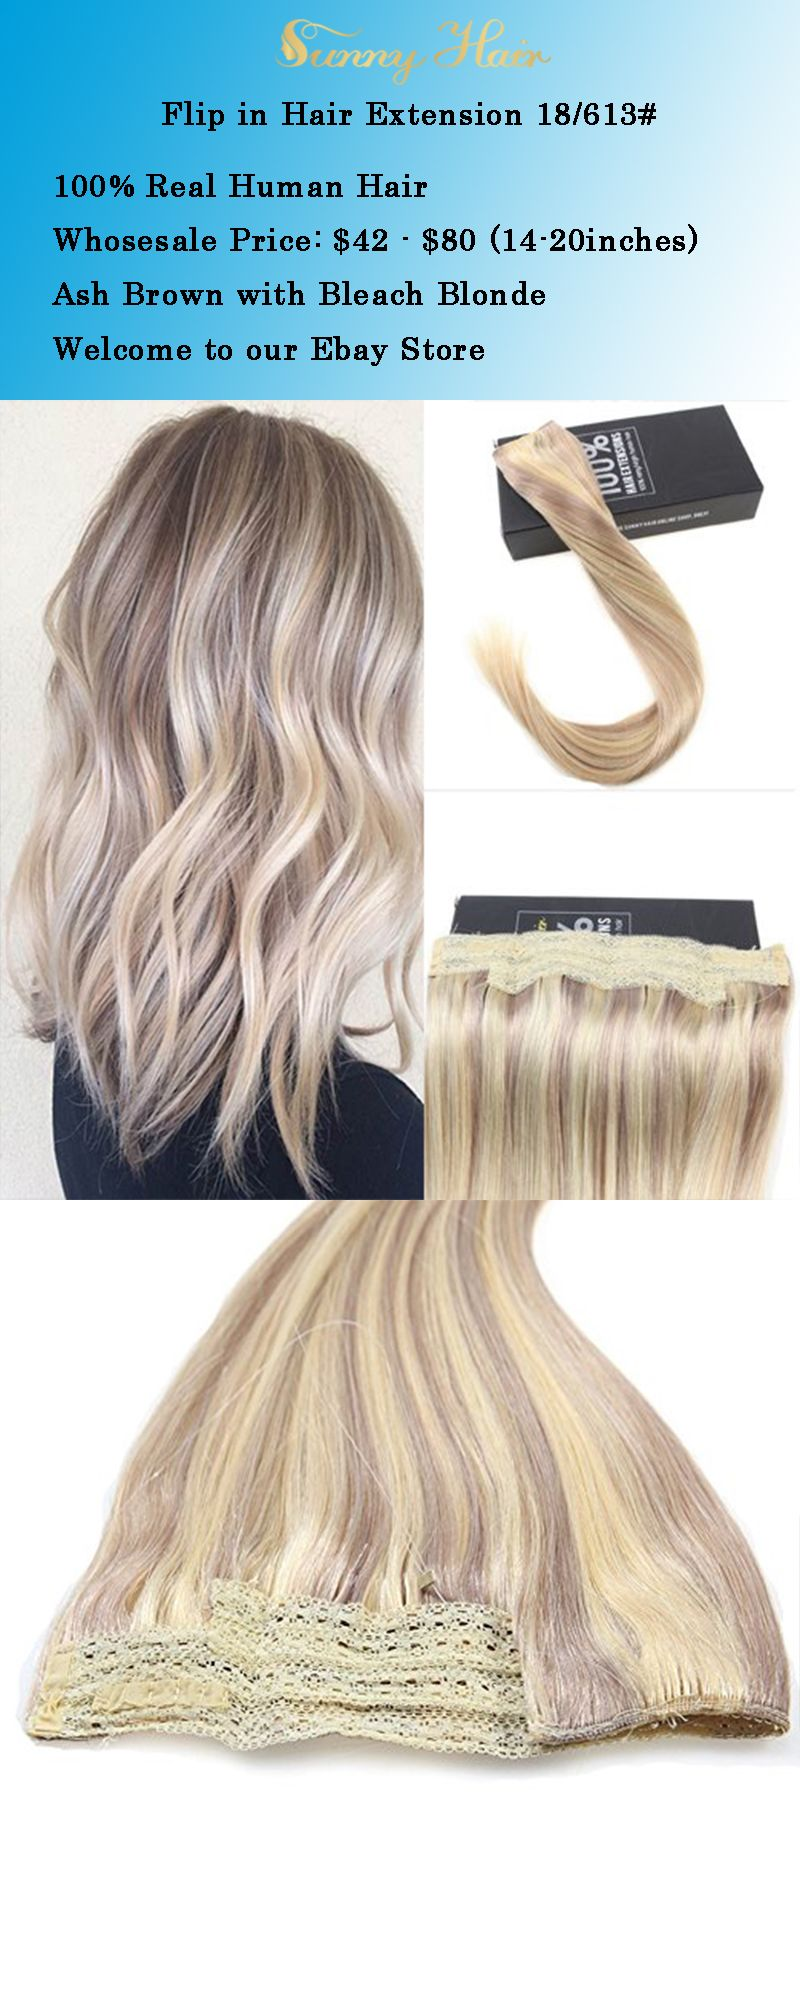 Sunny Hair Extension Ash Blonde With Caramel Blonde Hair Flip In